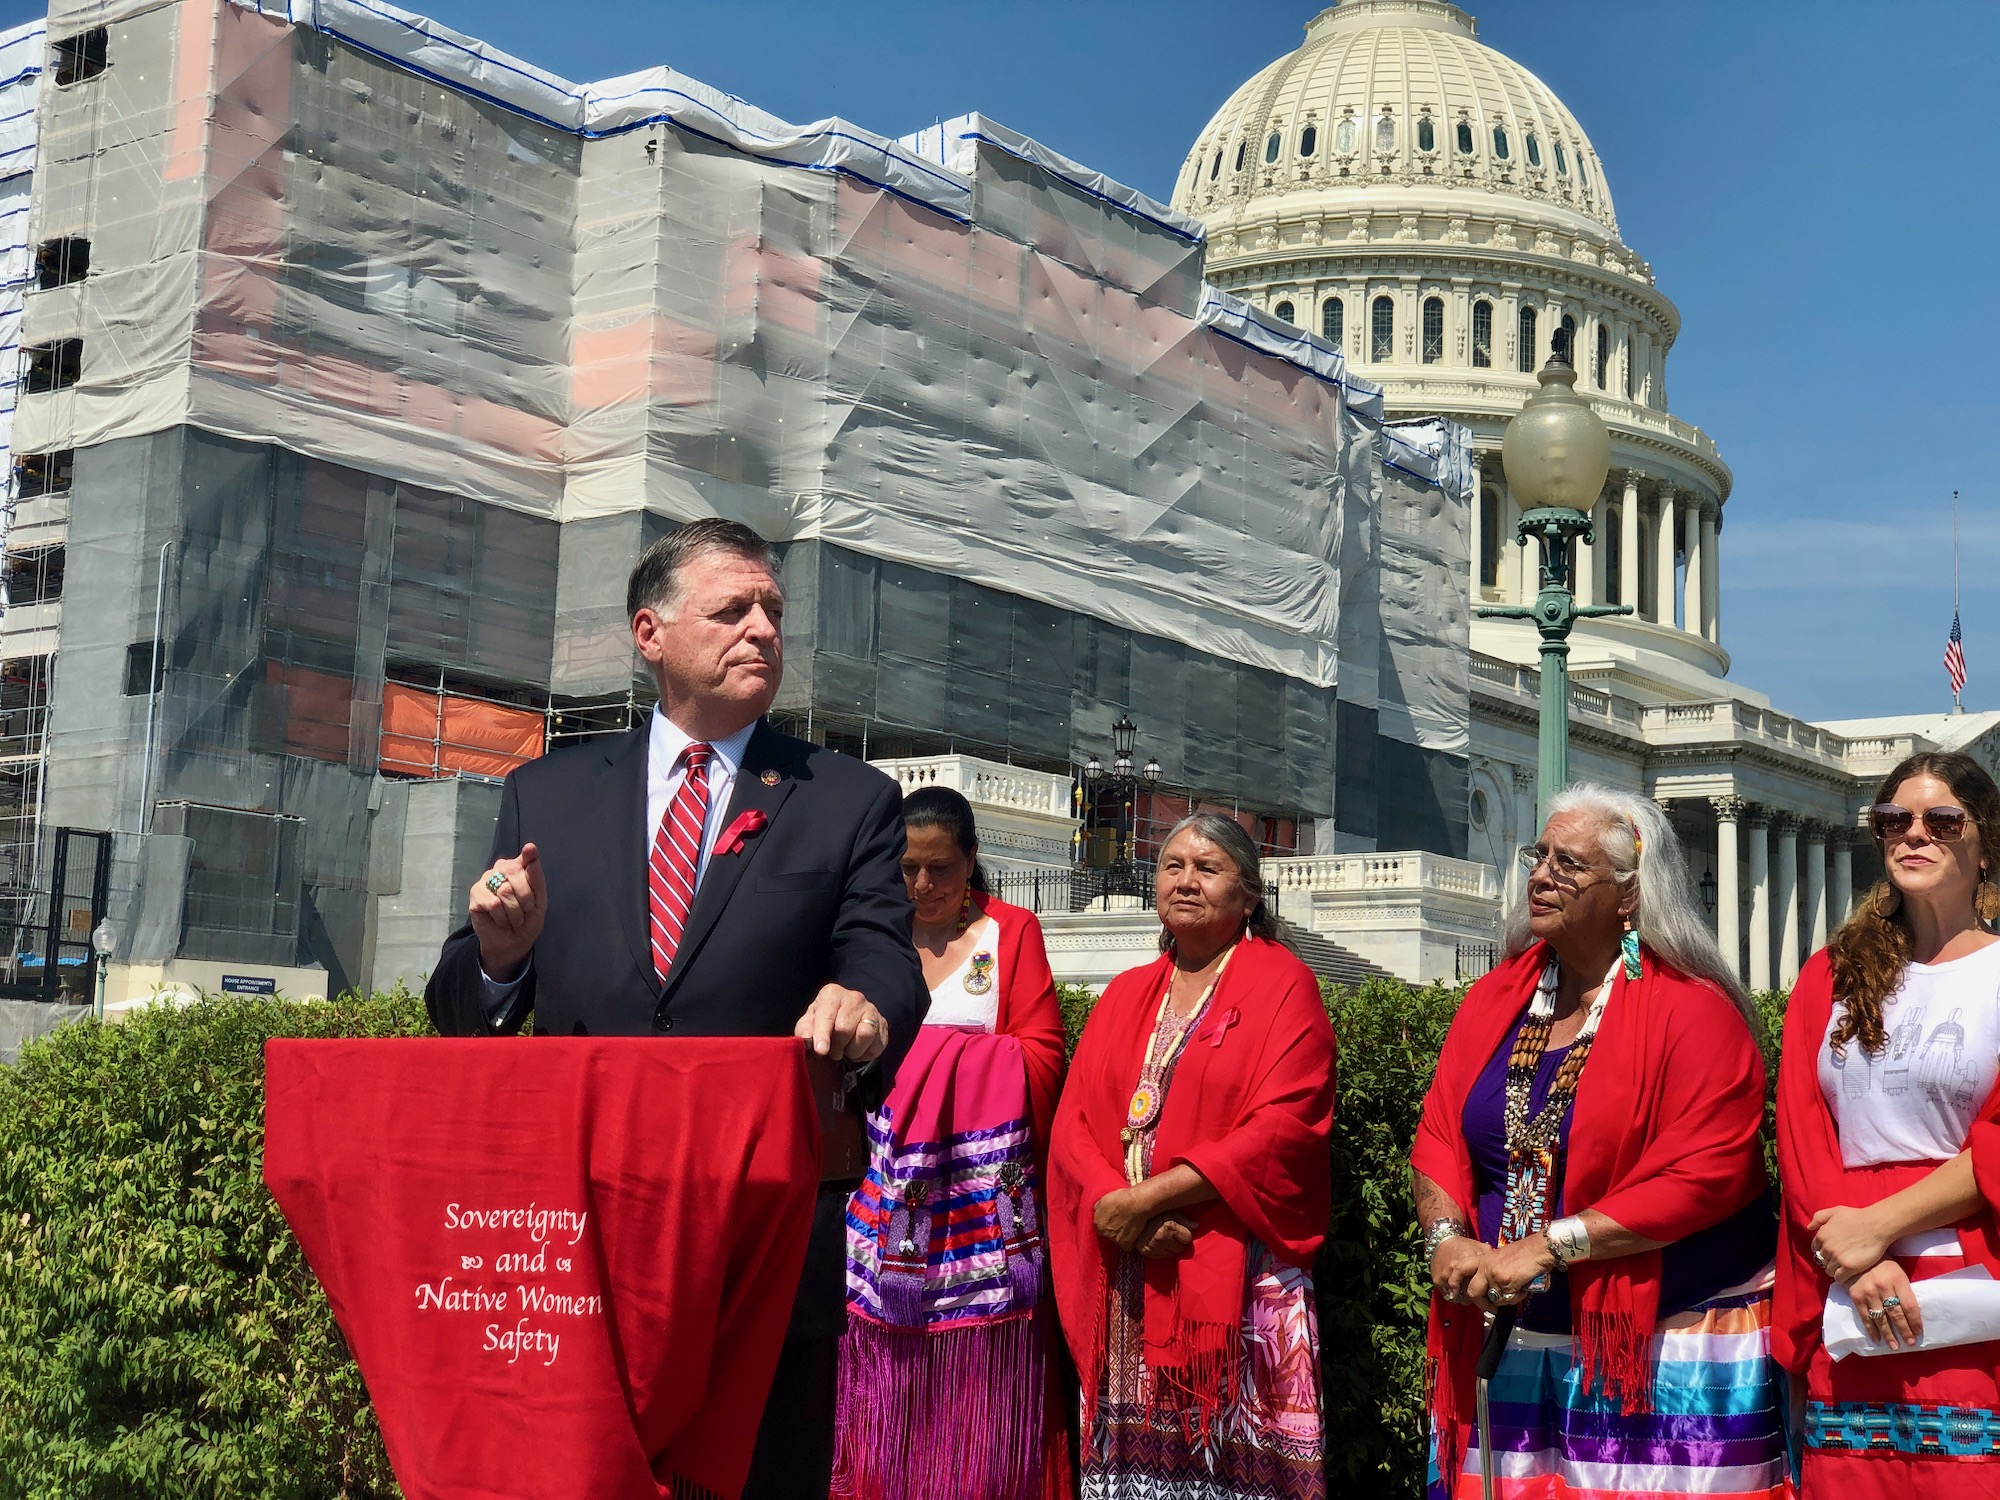 Rep. Tom Cole: Reflecting on all of our blessings